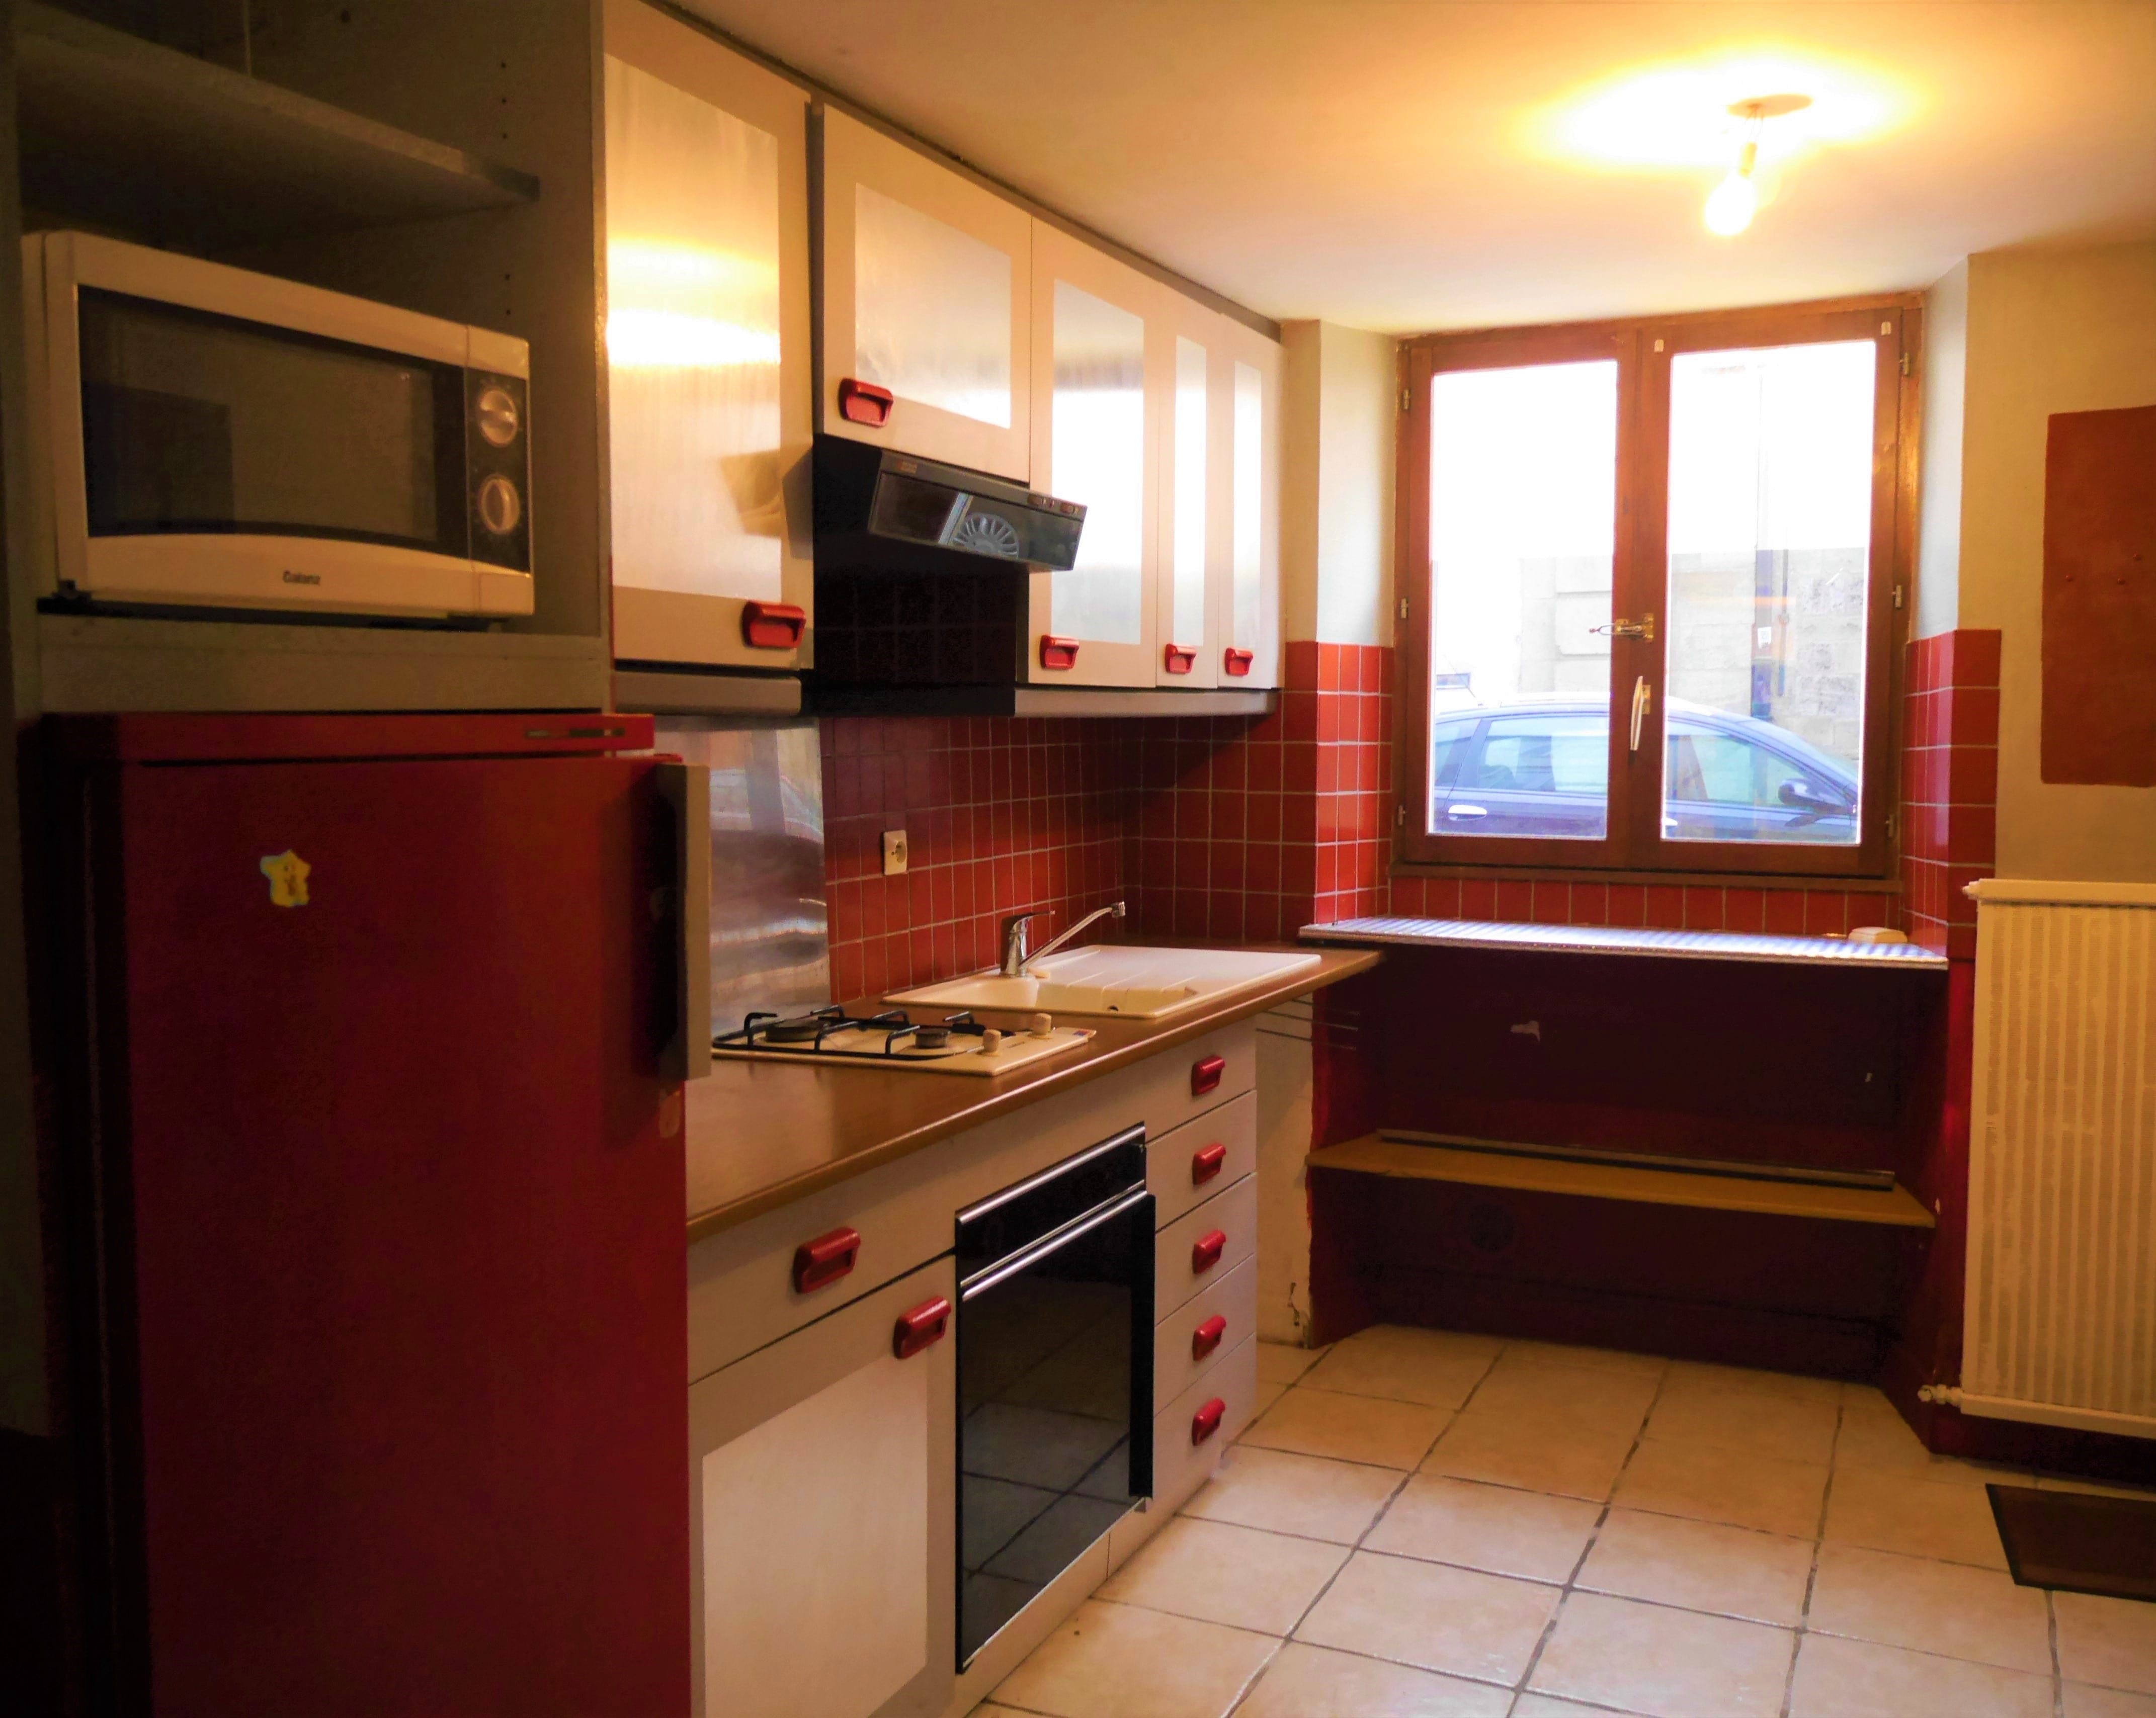 Damonte VENTE APPARTEMENT T2 CHALONS EN CHAMPAGNE RF 498